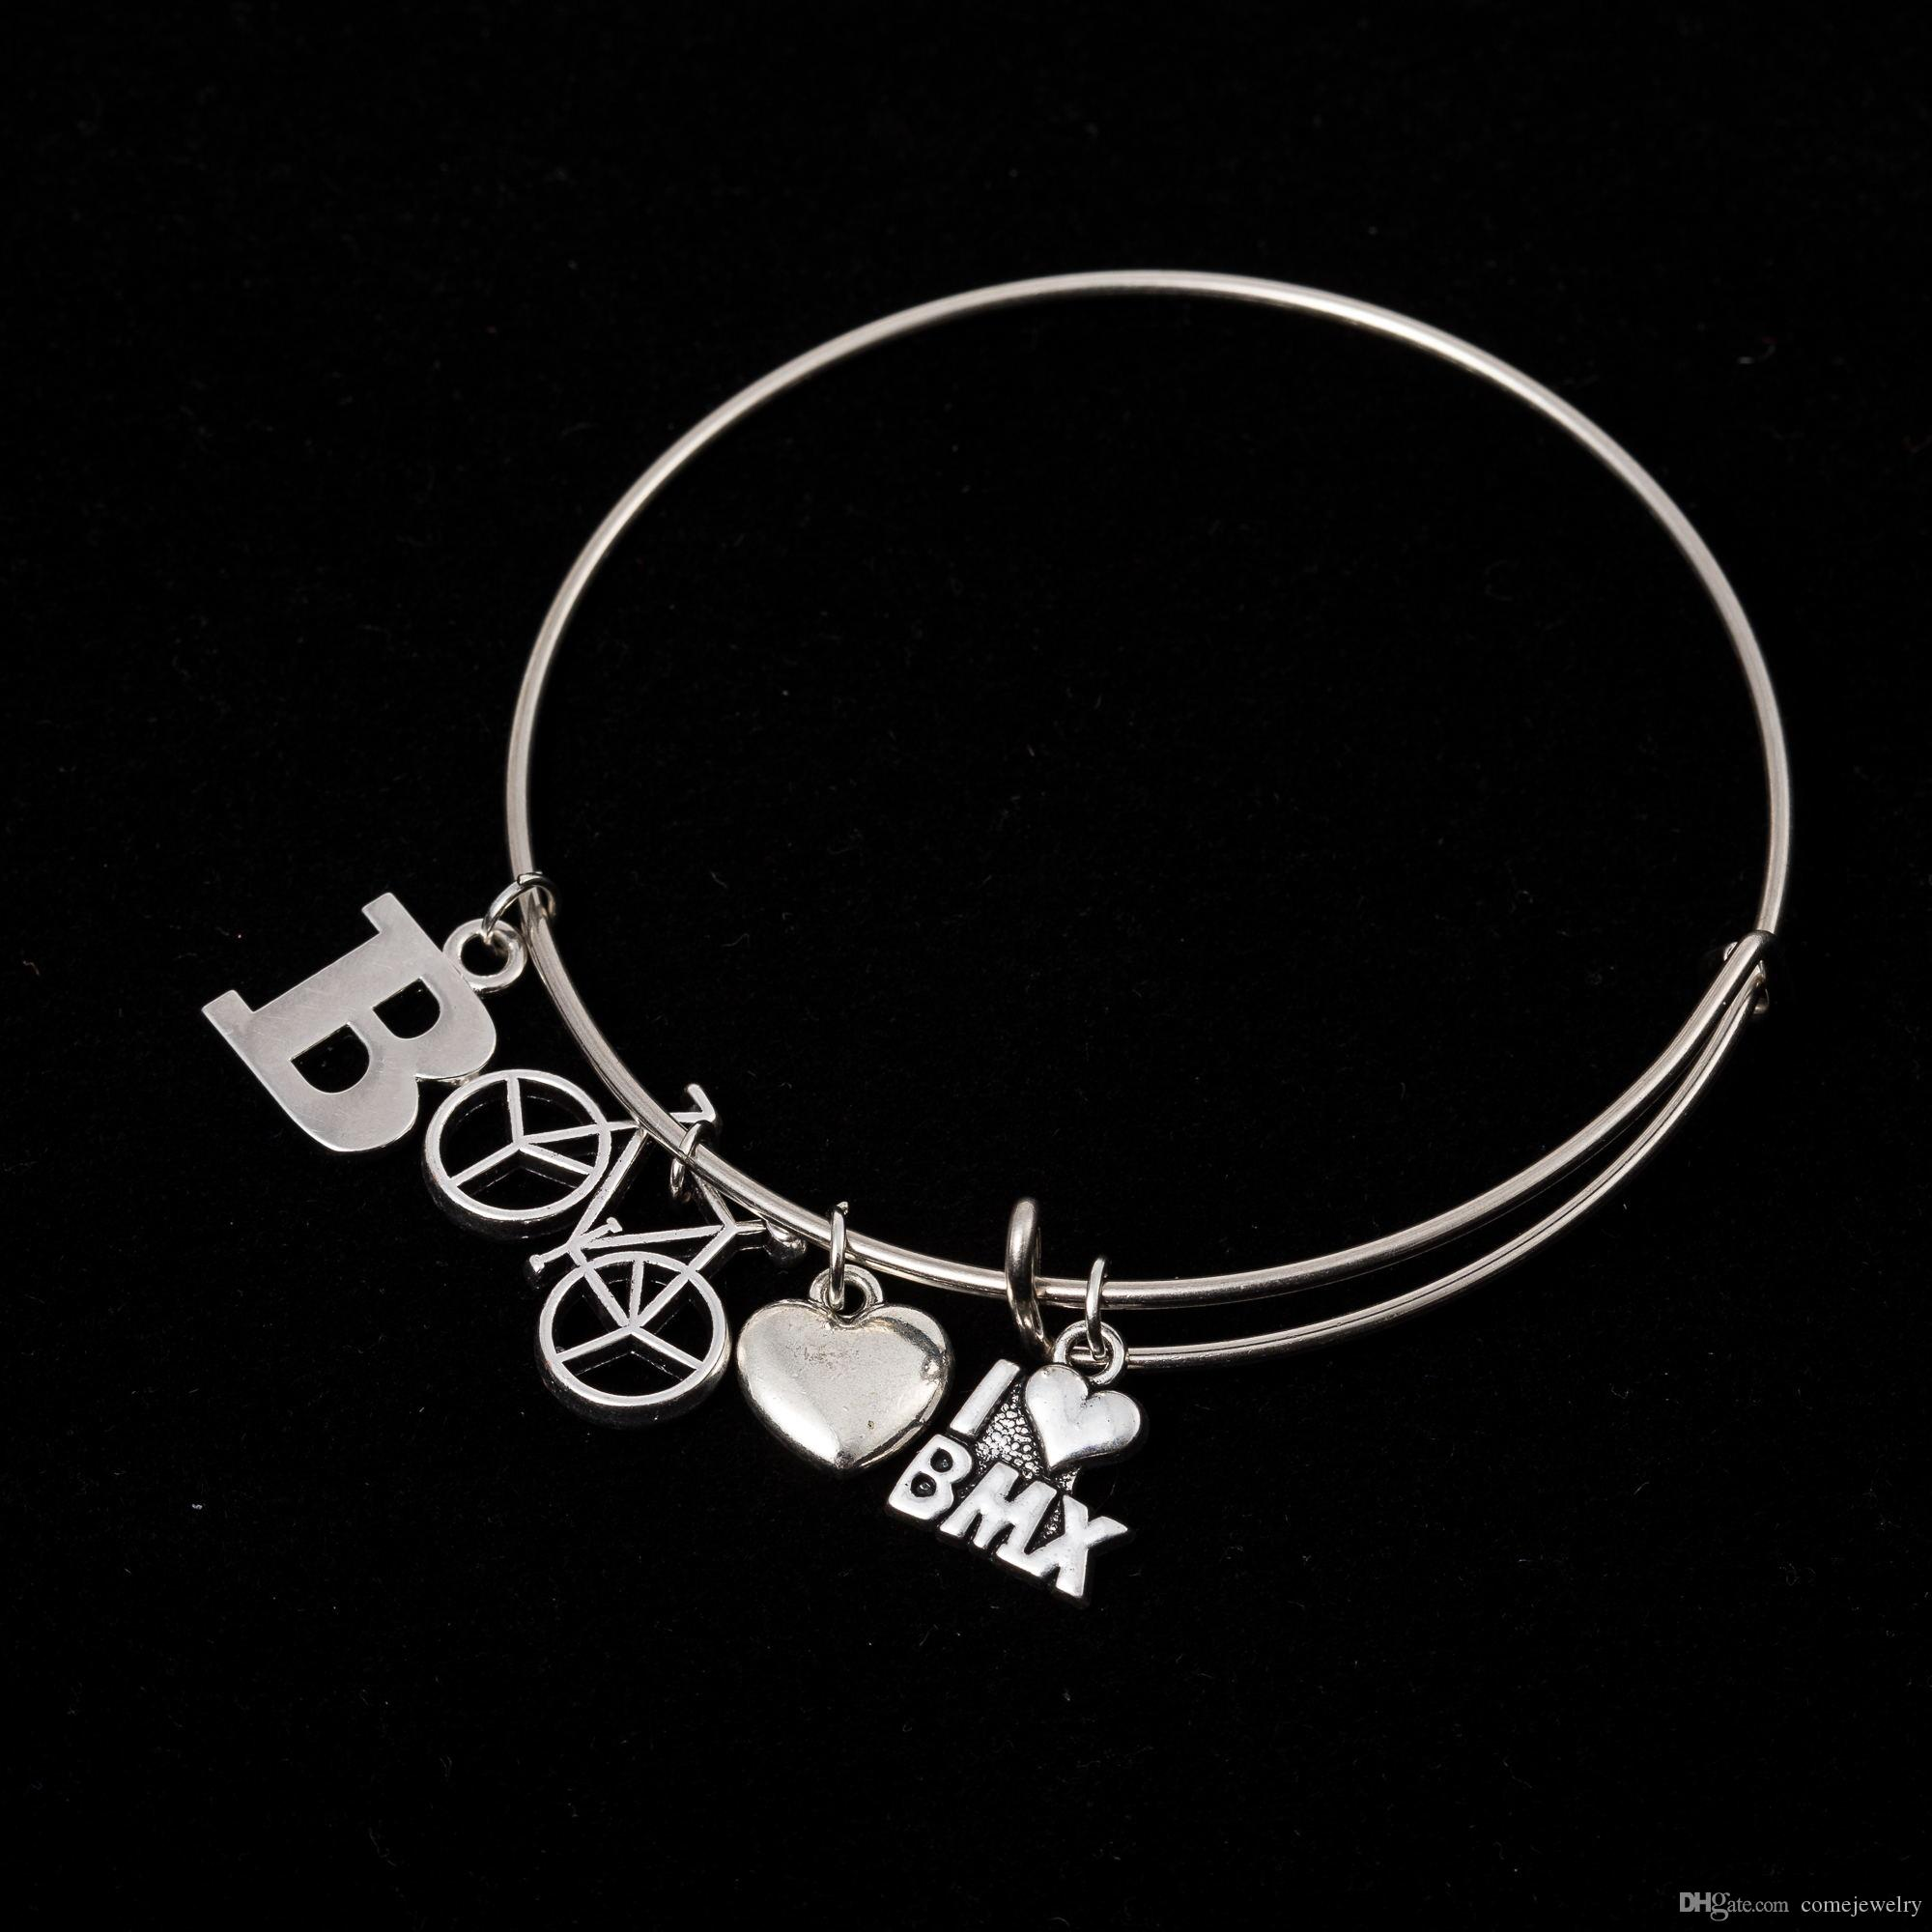 cross stainless bangles plated bracelet products with distressed faith bangle hand charm steel bracelets silver handmade stamped